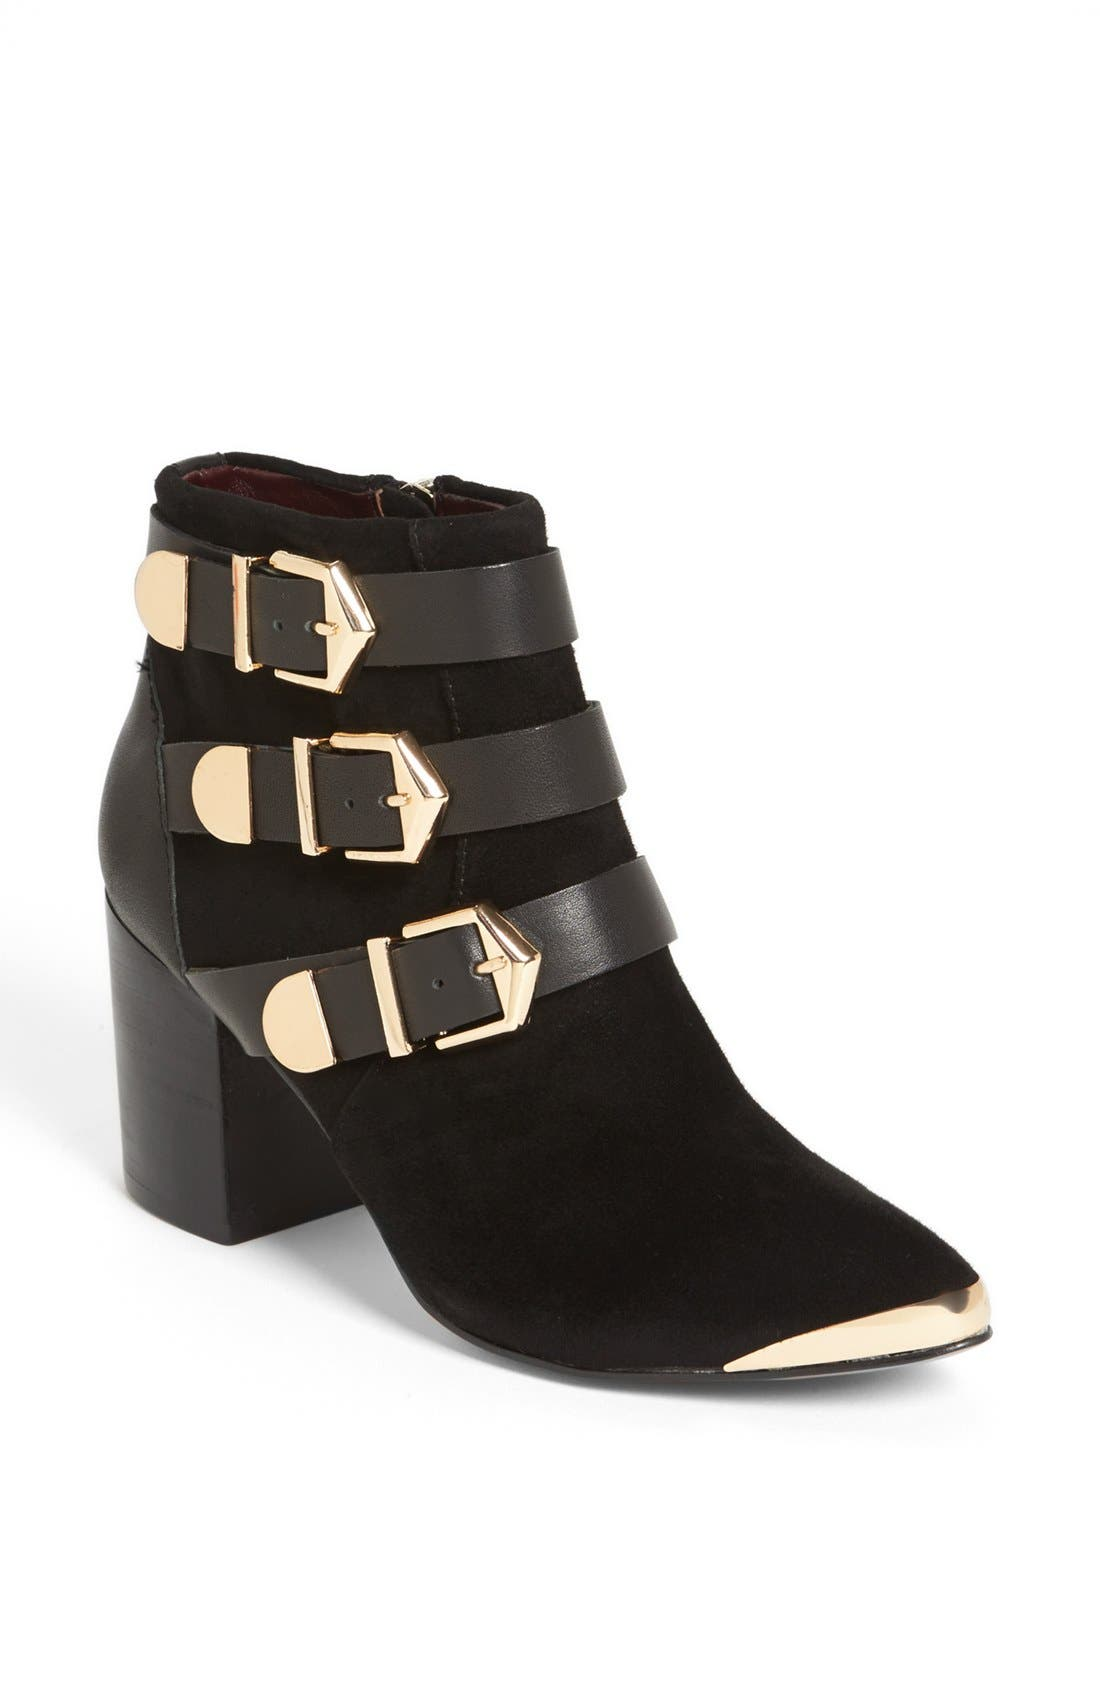 Alternate Image 1 Selected - REPORT Signature 'Fairfield' Pointed Toe Bootie